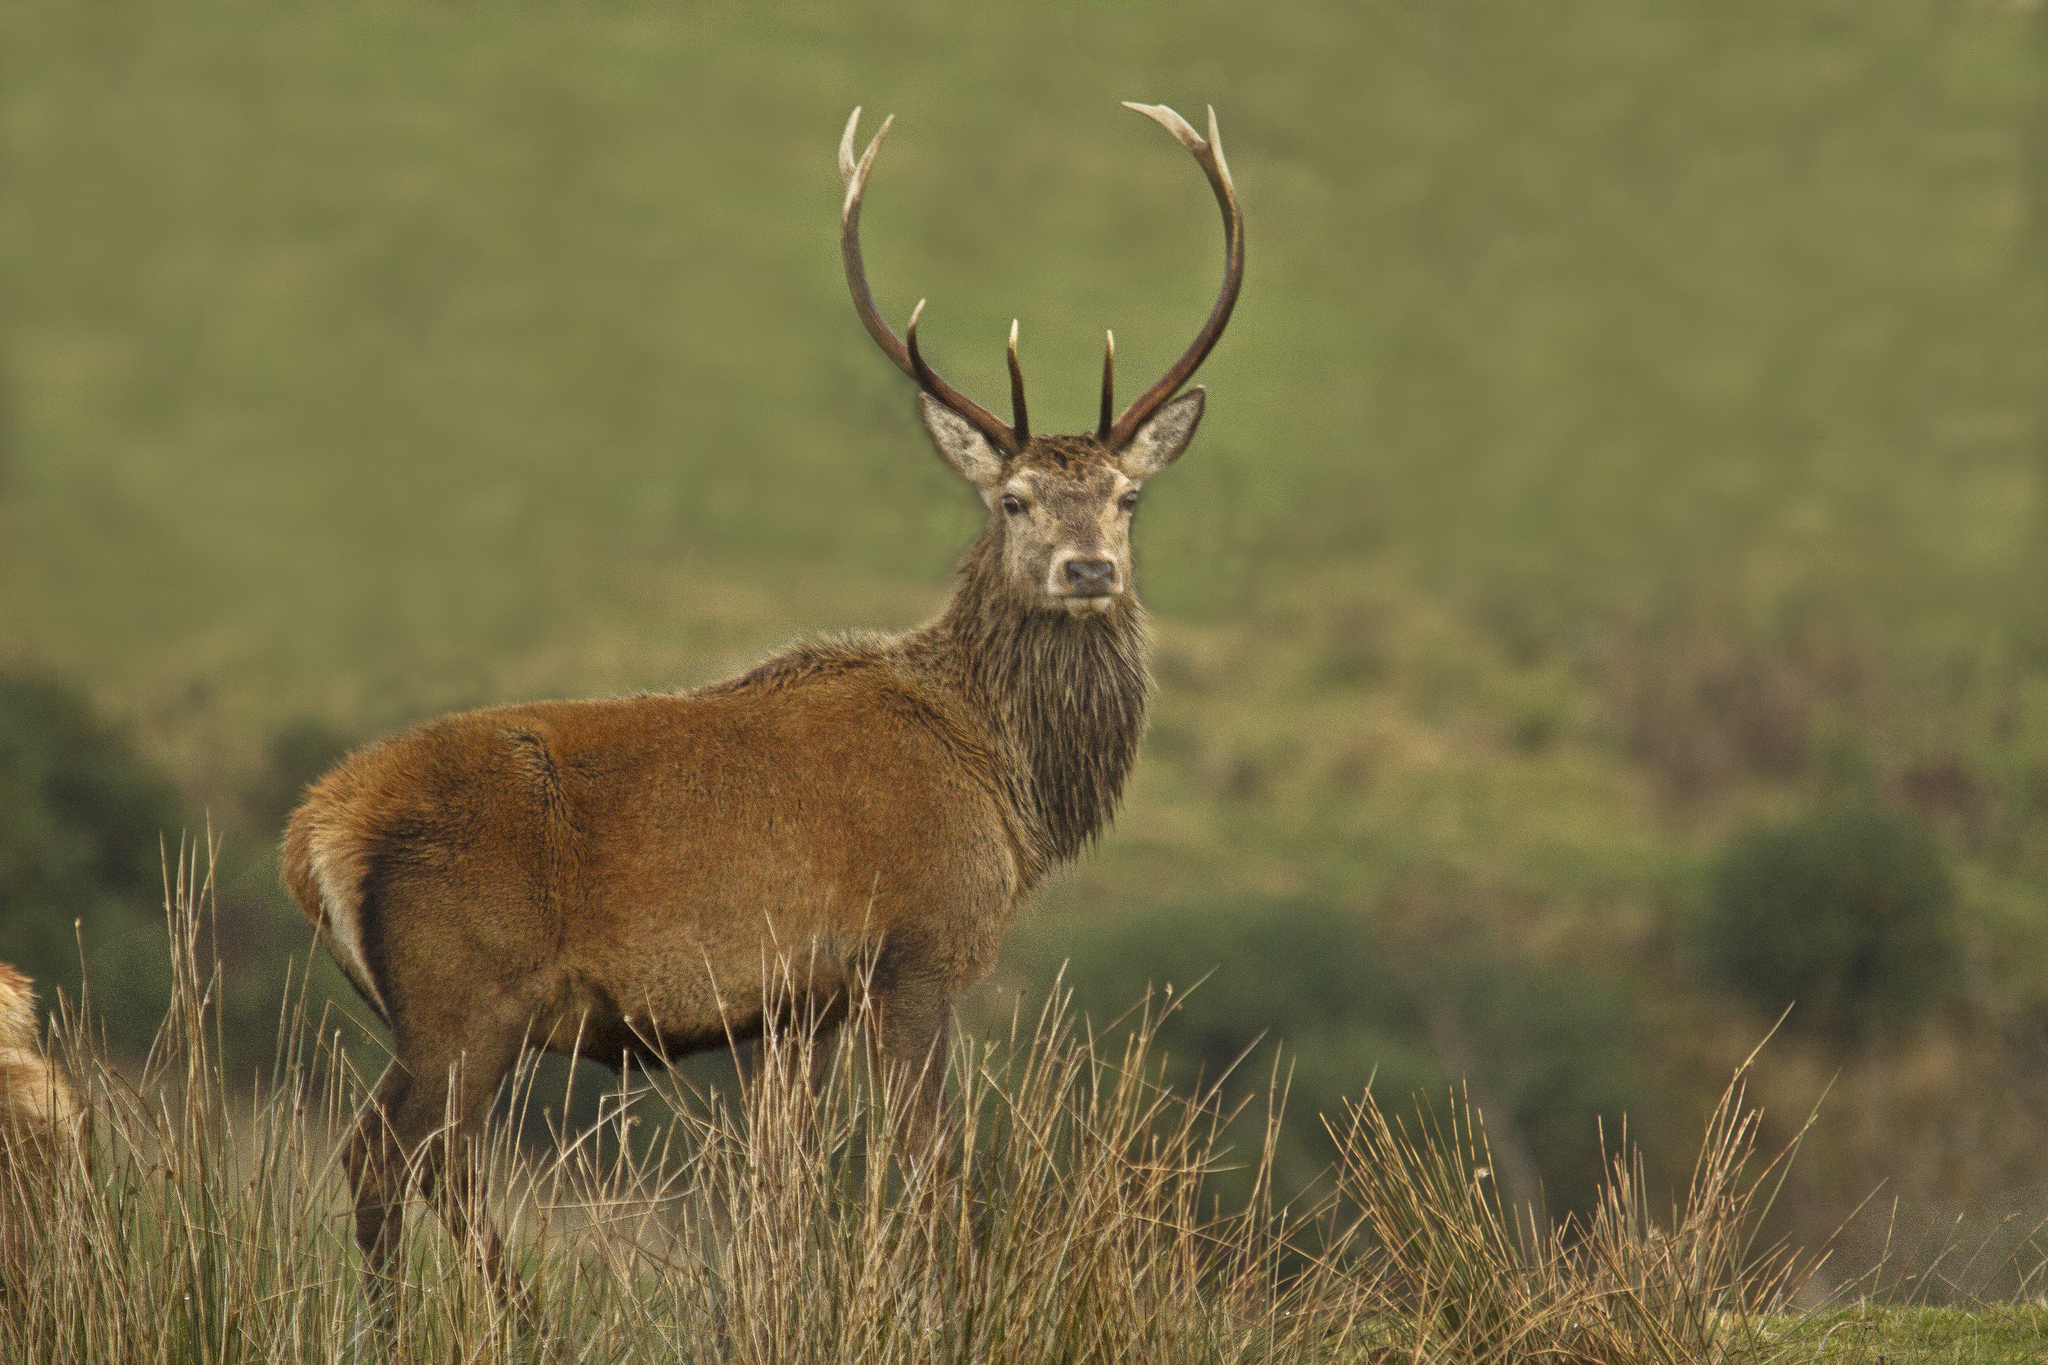 red deer looking at photographer in Killarney National Park